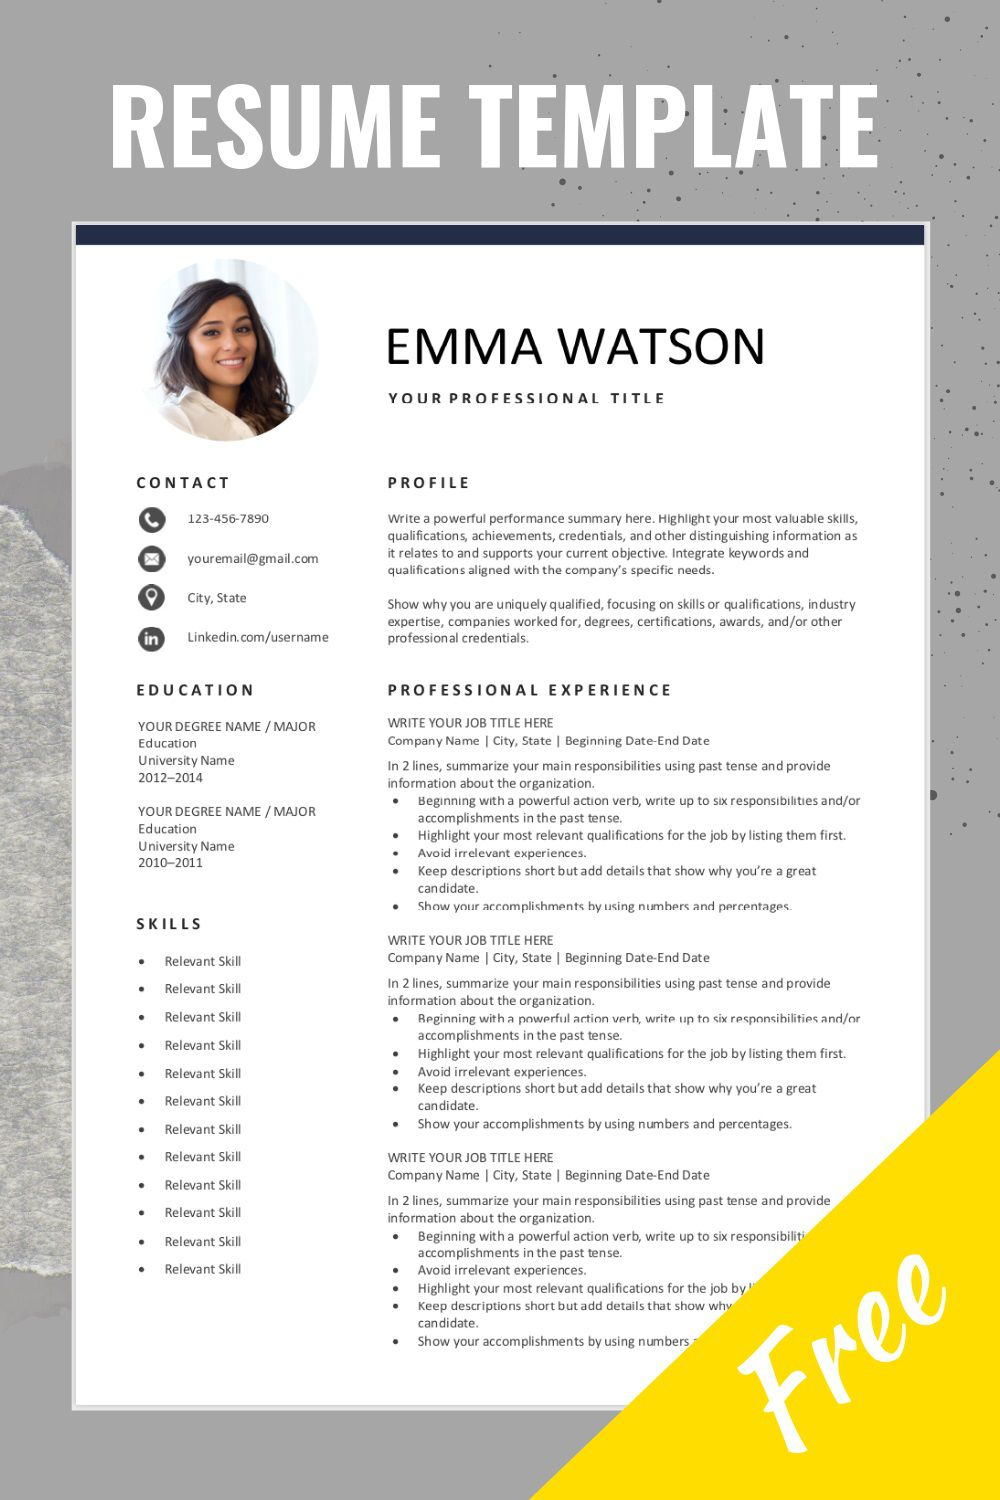 000 Exceptional Free Resume Template Microsoft Word Picture  2007 Eye Catching Download 2010Full